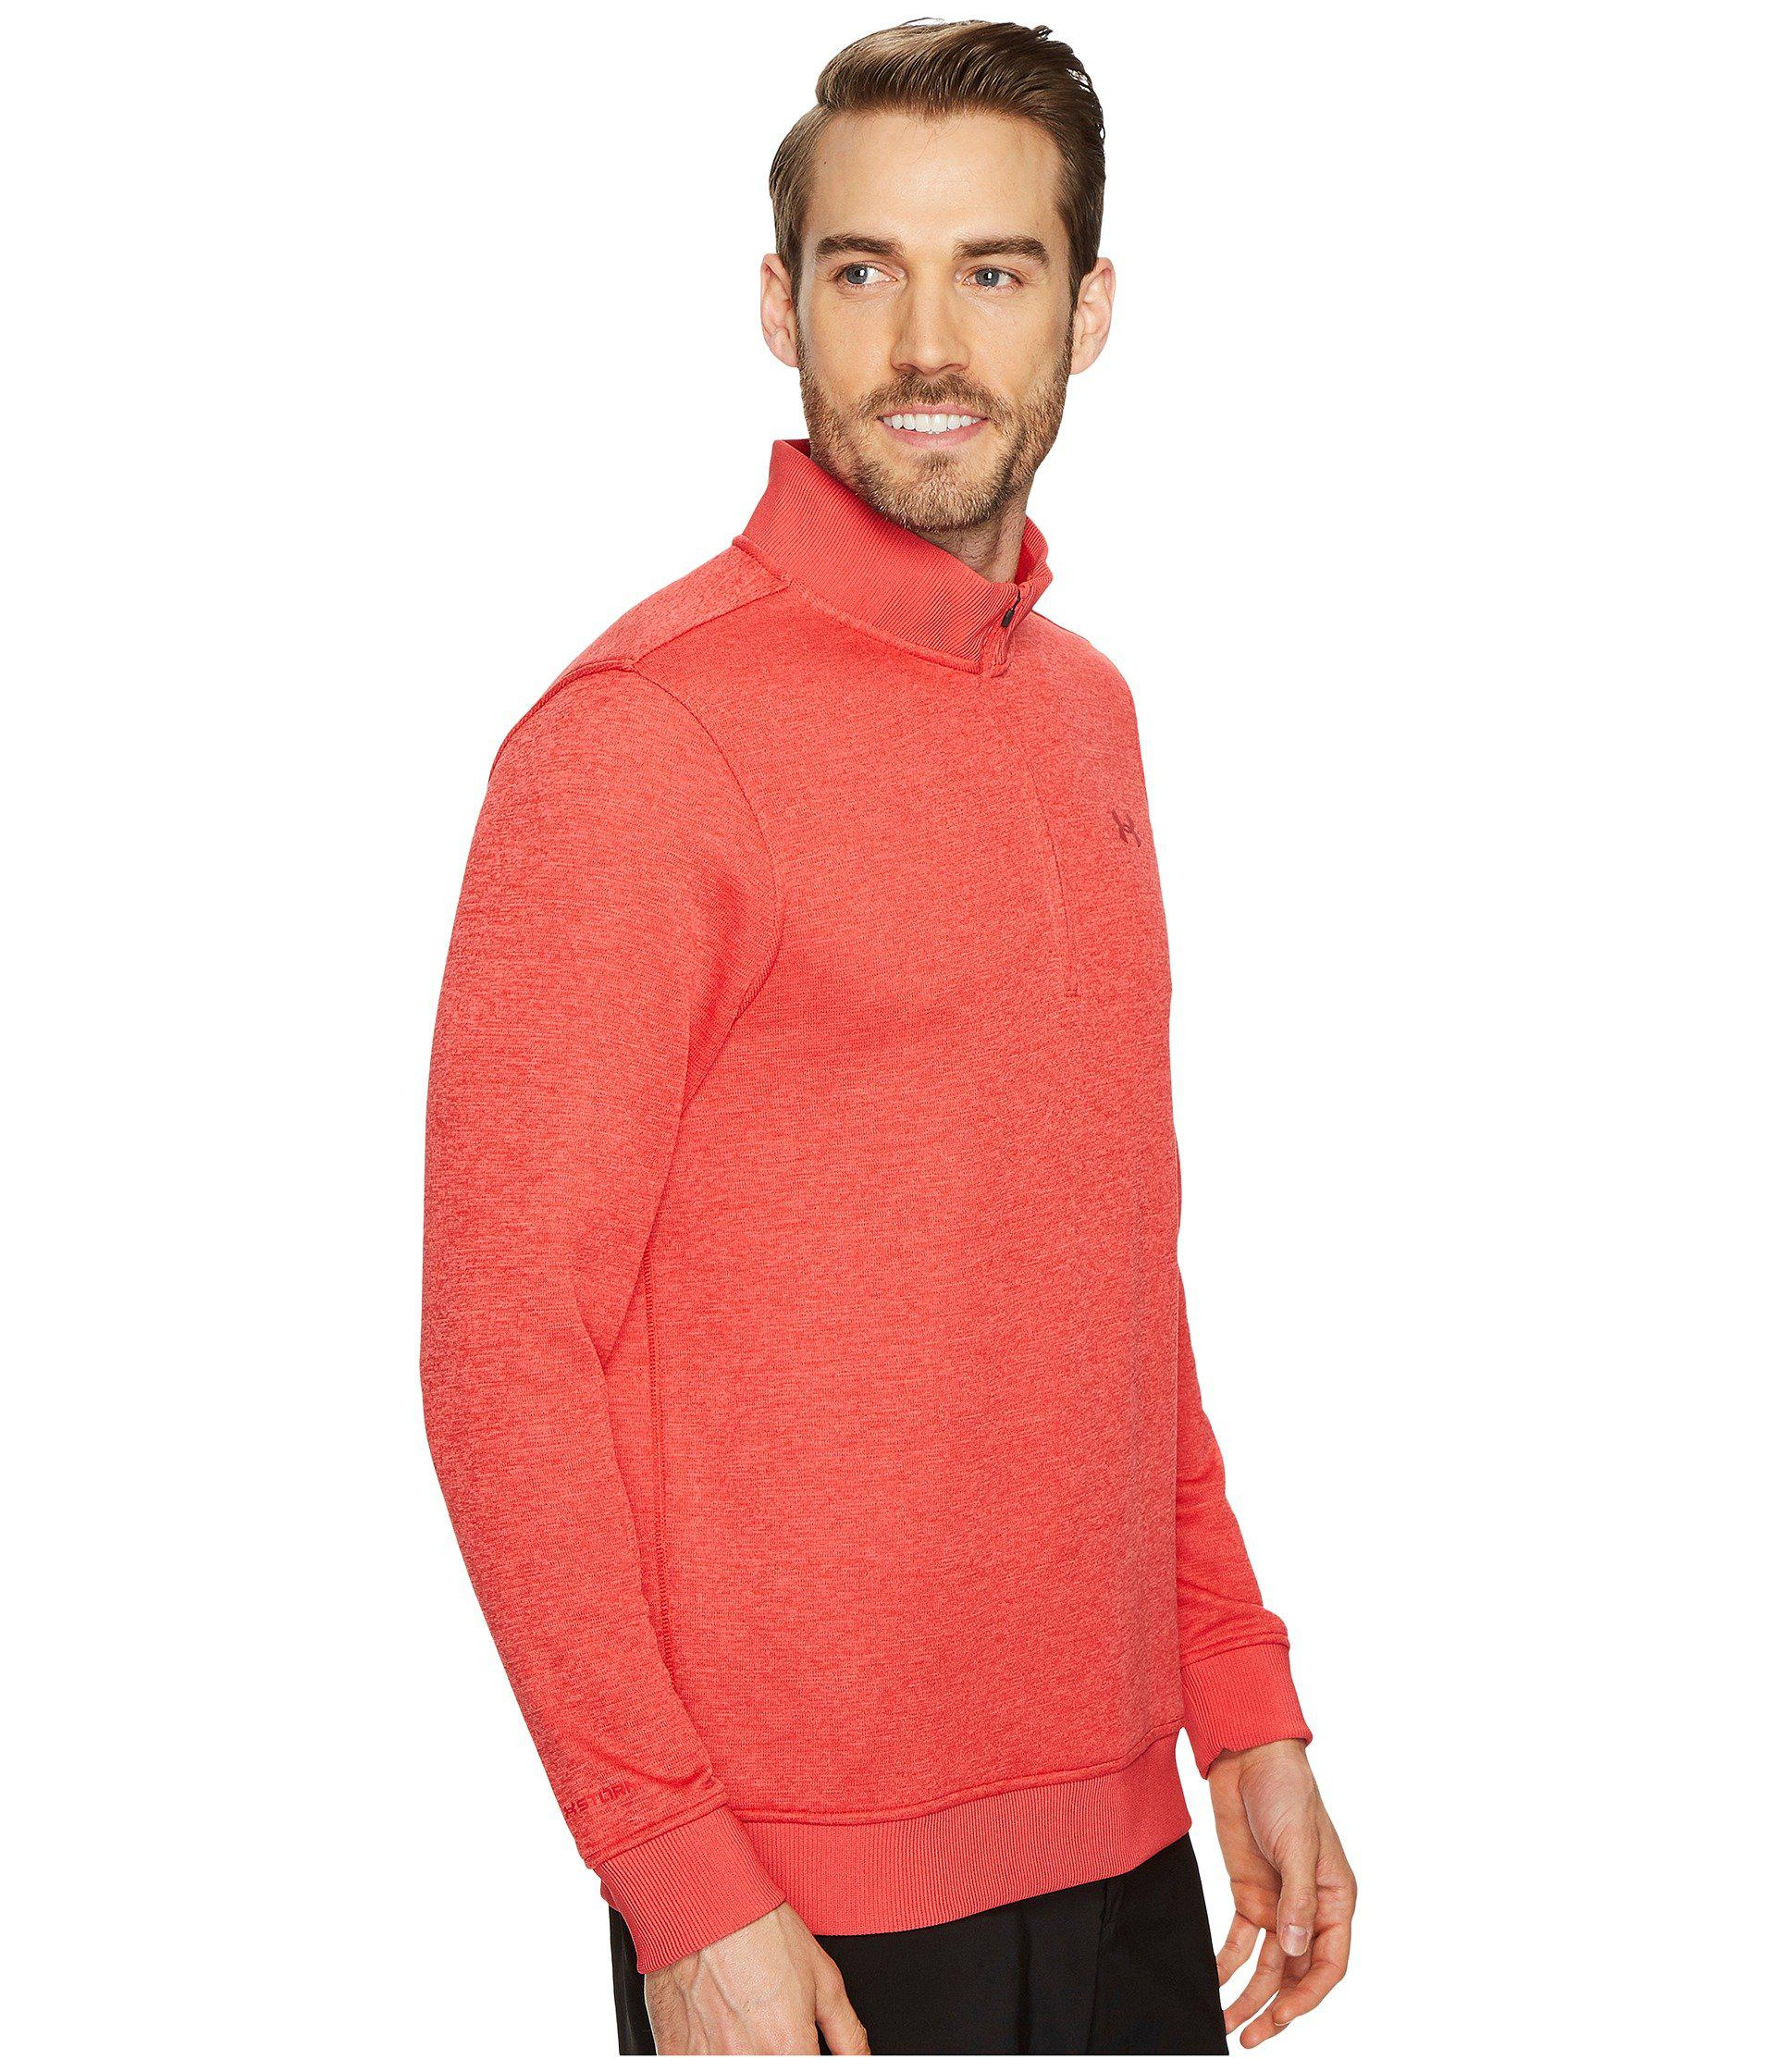 2fcc2e1739a2 Lyst - Under Armour Ua Storm Sweaterfleece 1 4 Zip in Red for Men